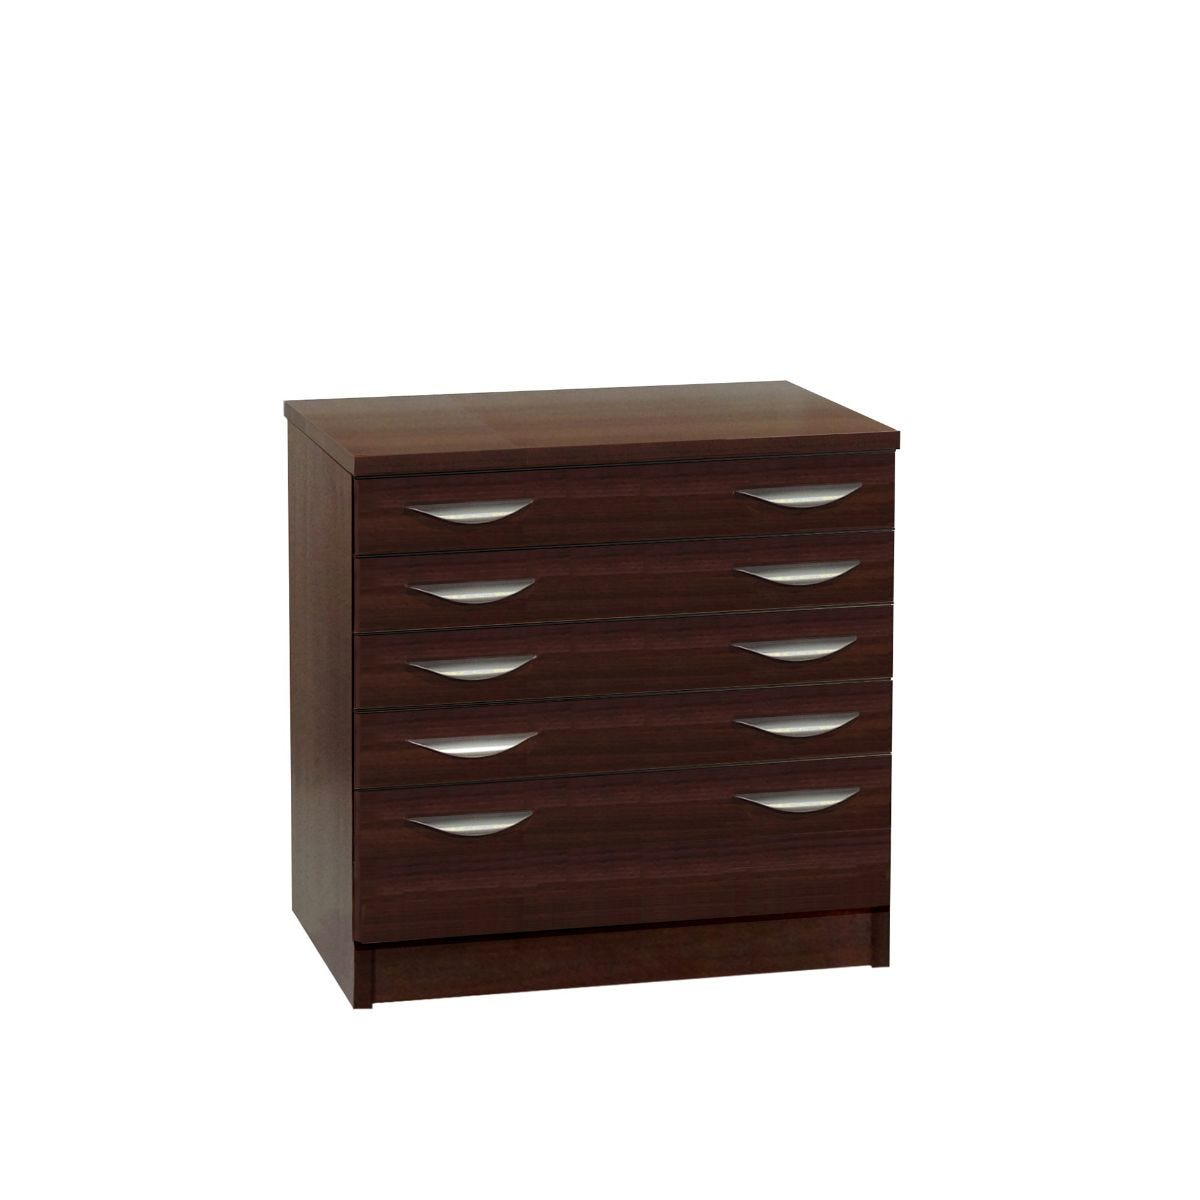 R White Professional 5 Drawer A2 Plan Chest, Walnut Wood Grain